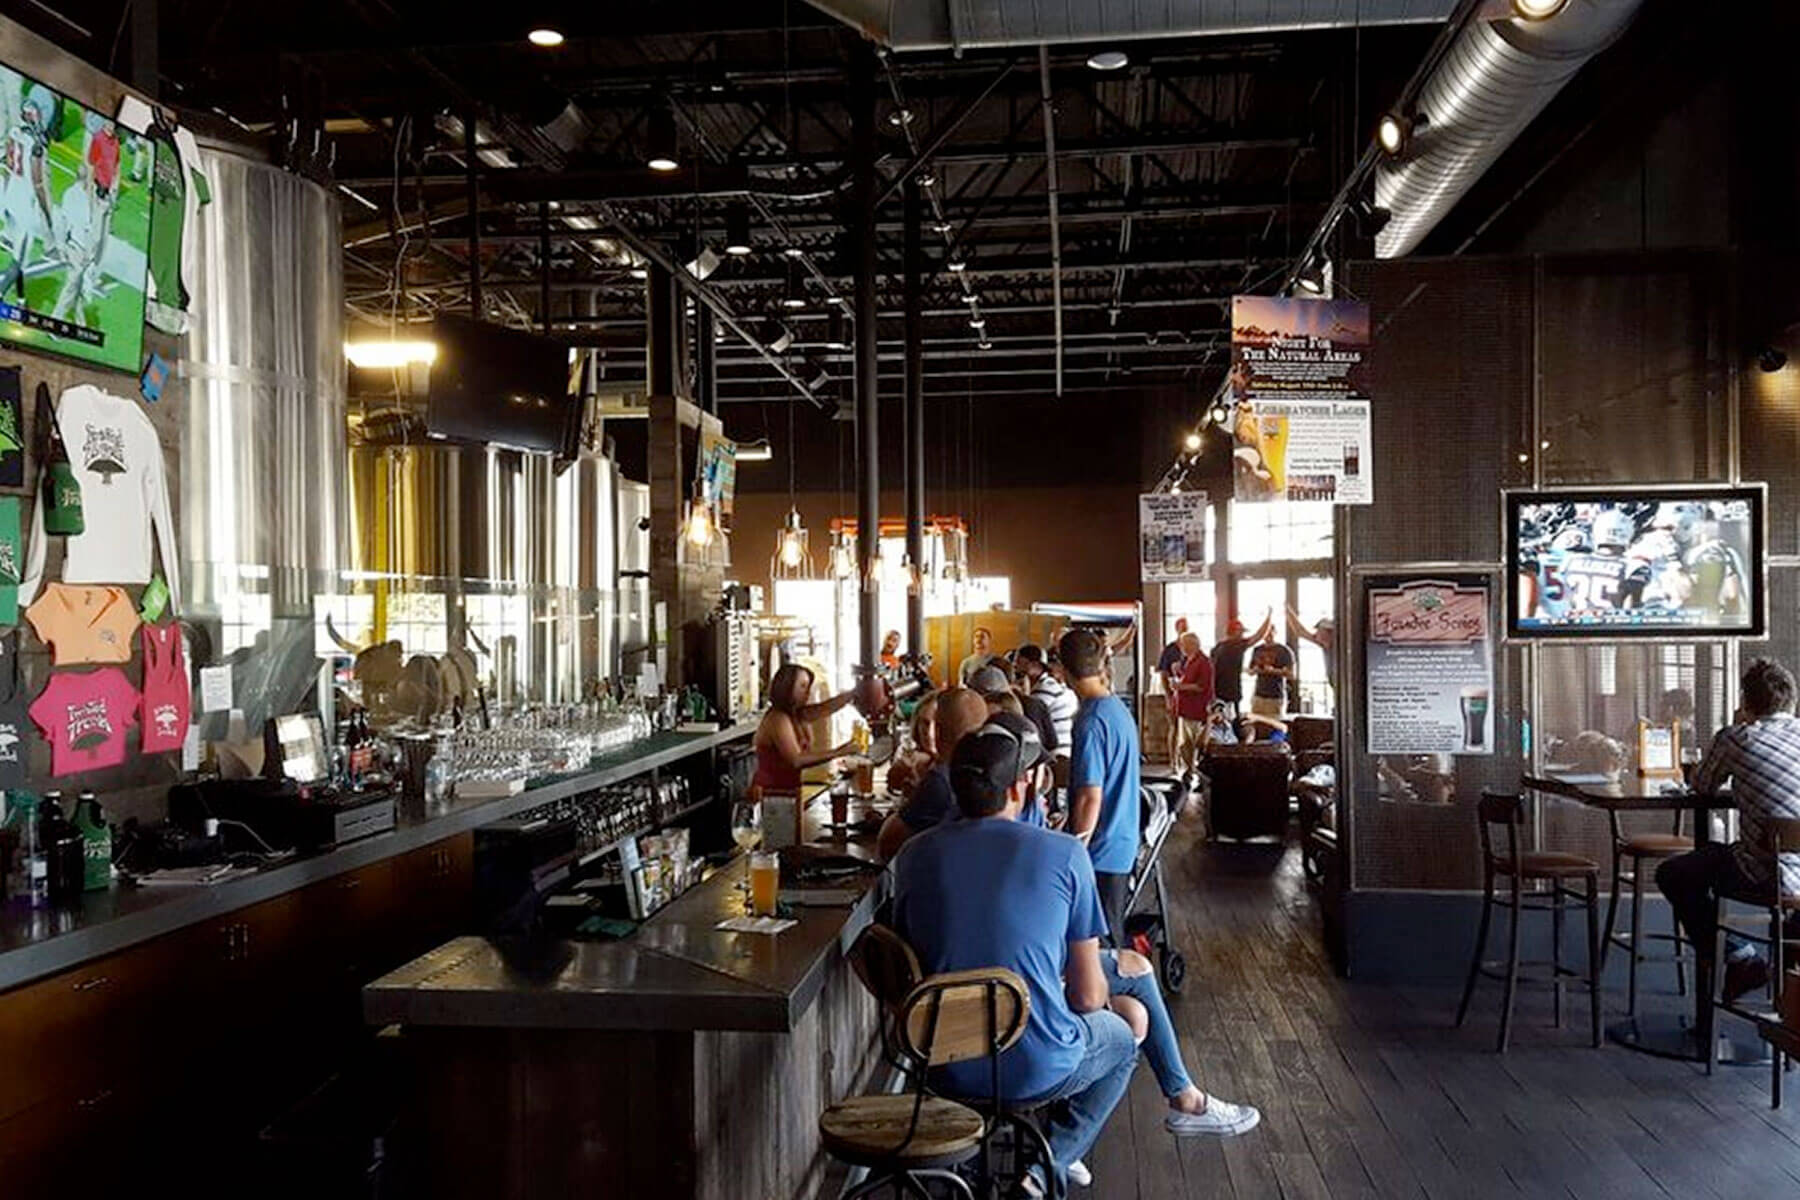 Inside the Tap Room at Twisted Trunk Brewing in Palm Beach Gardens, Florida